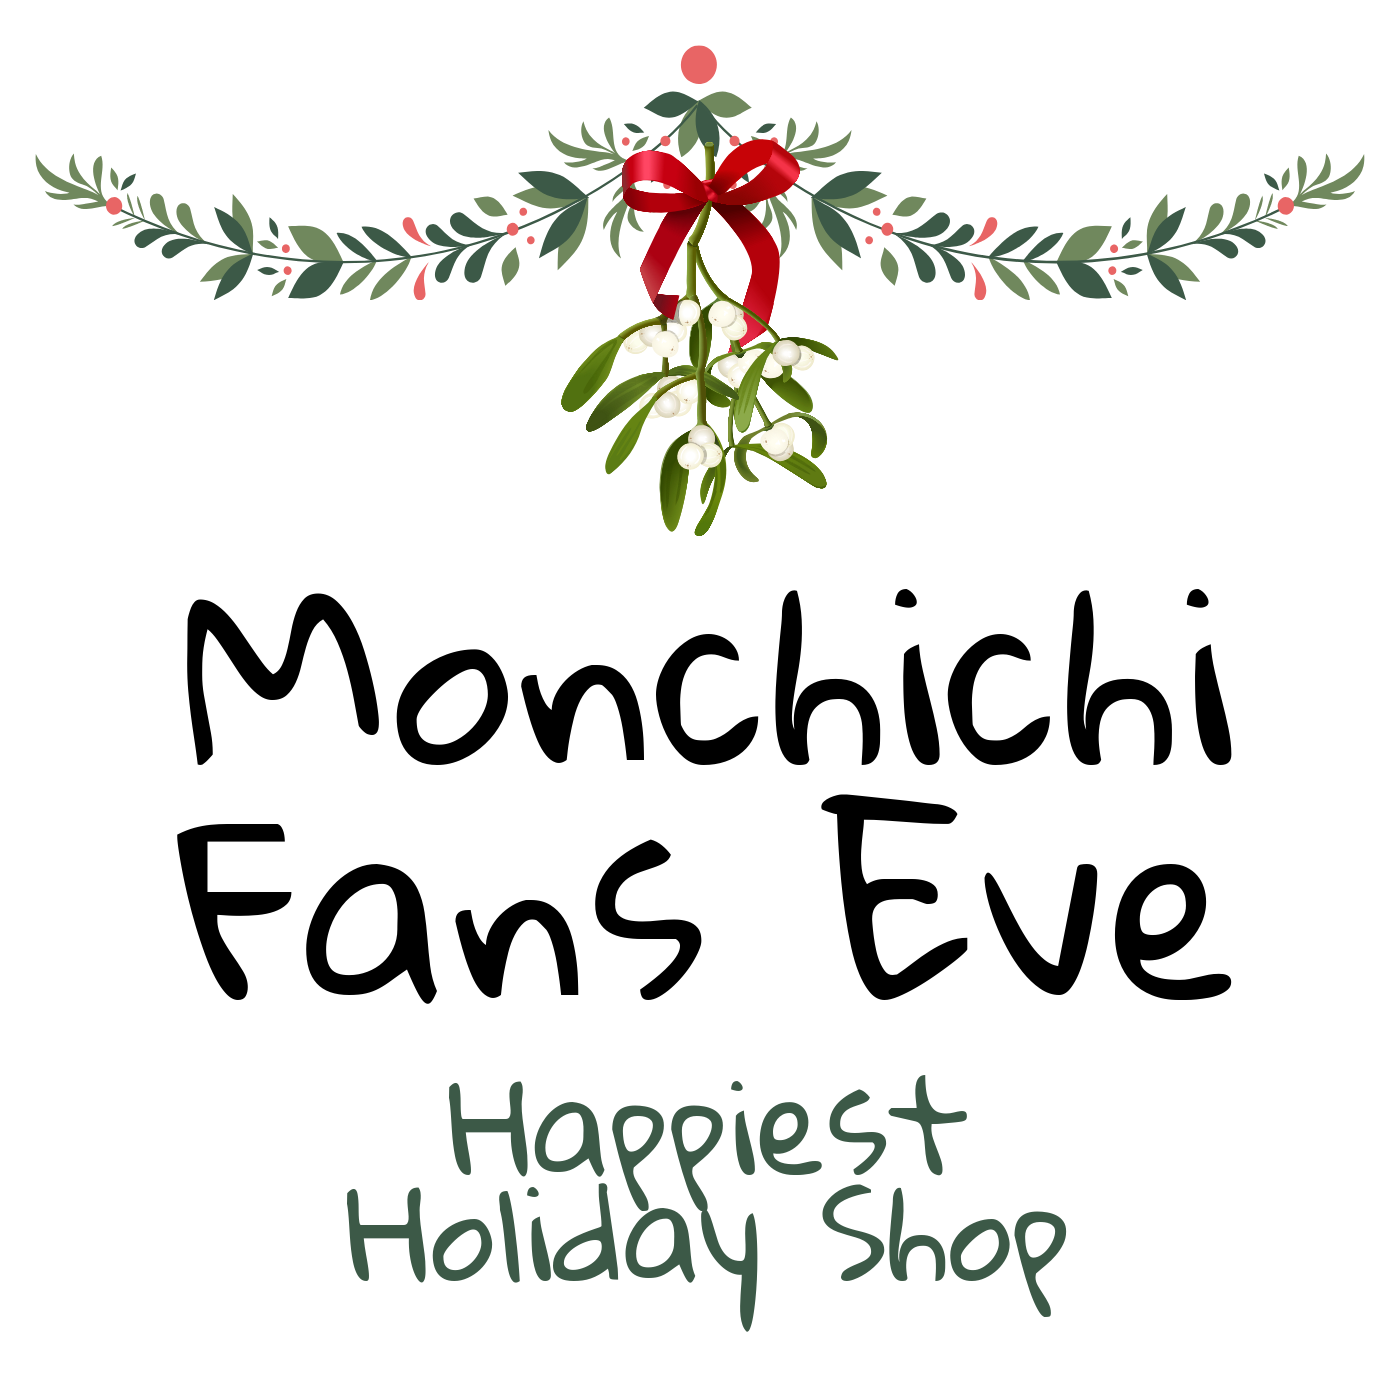 730 - Monchichi Fans' Eve | Happiest Holiday Shop #3